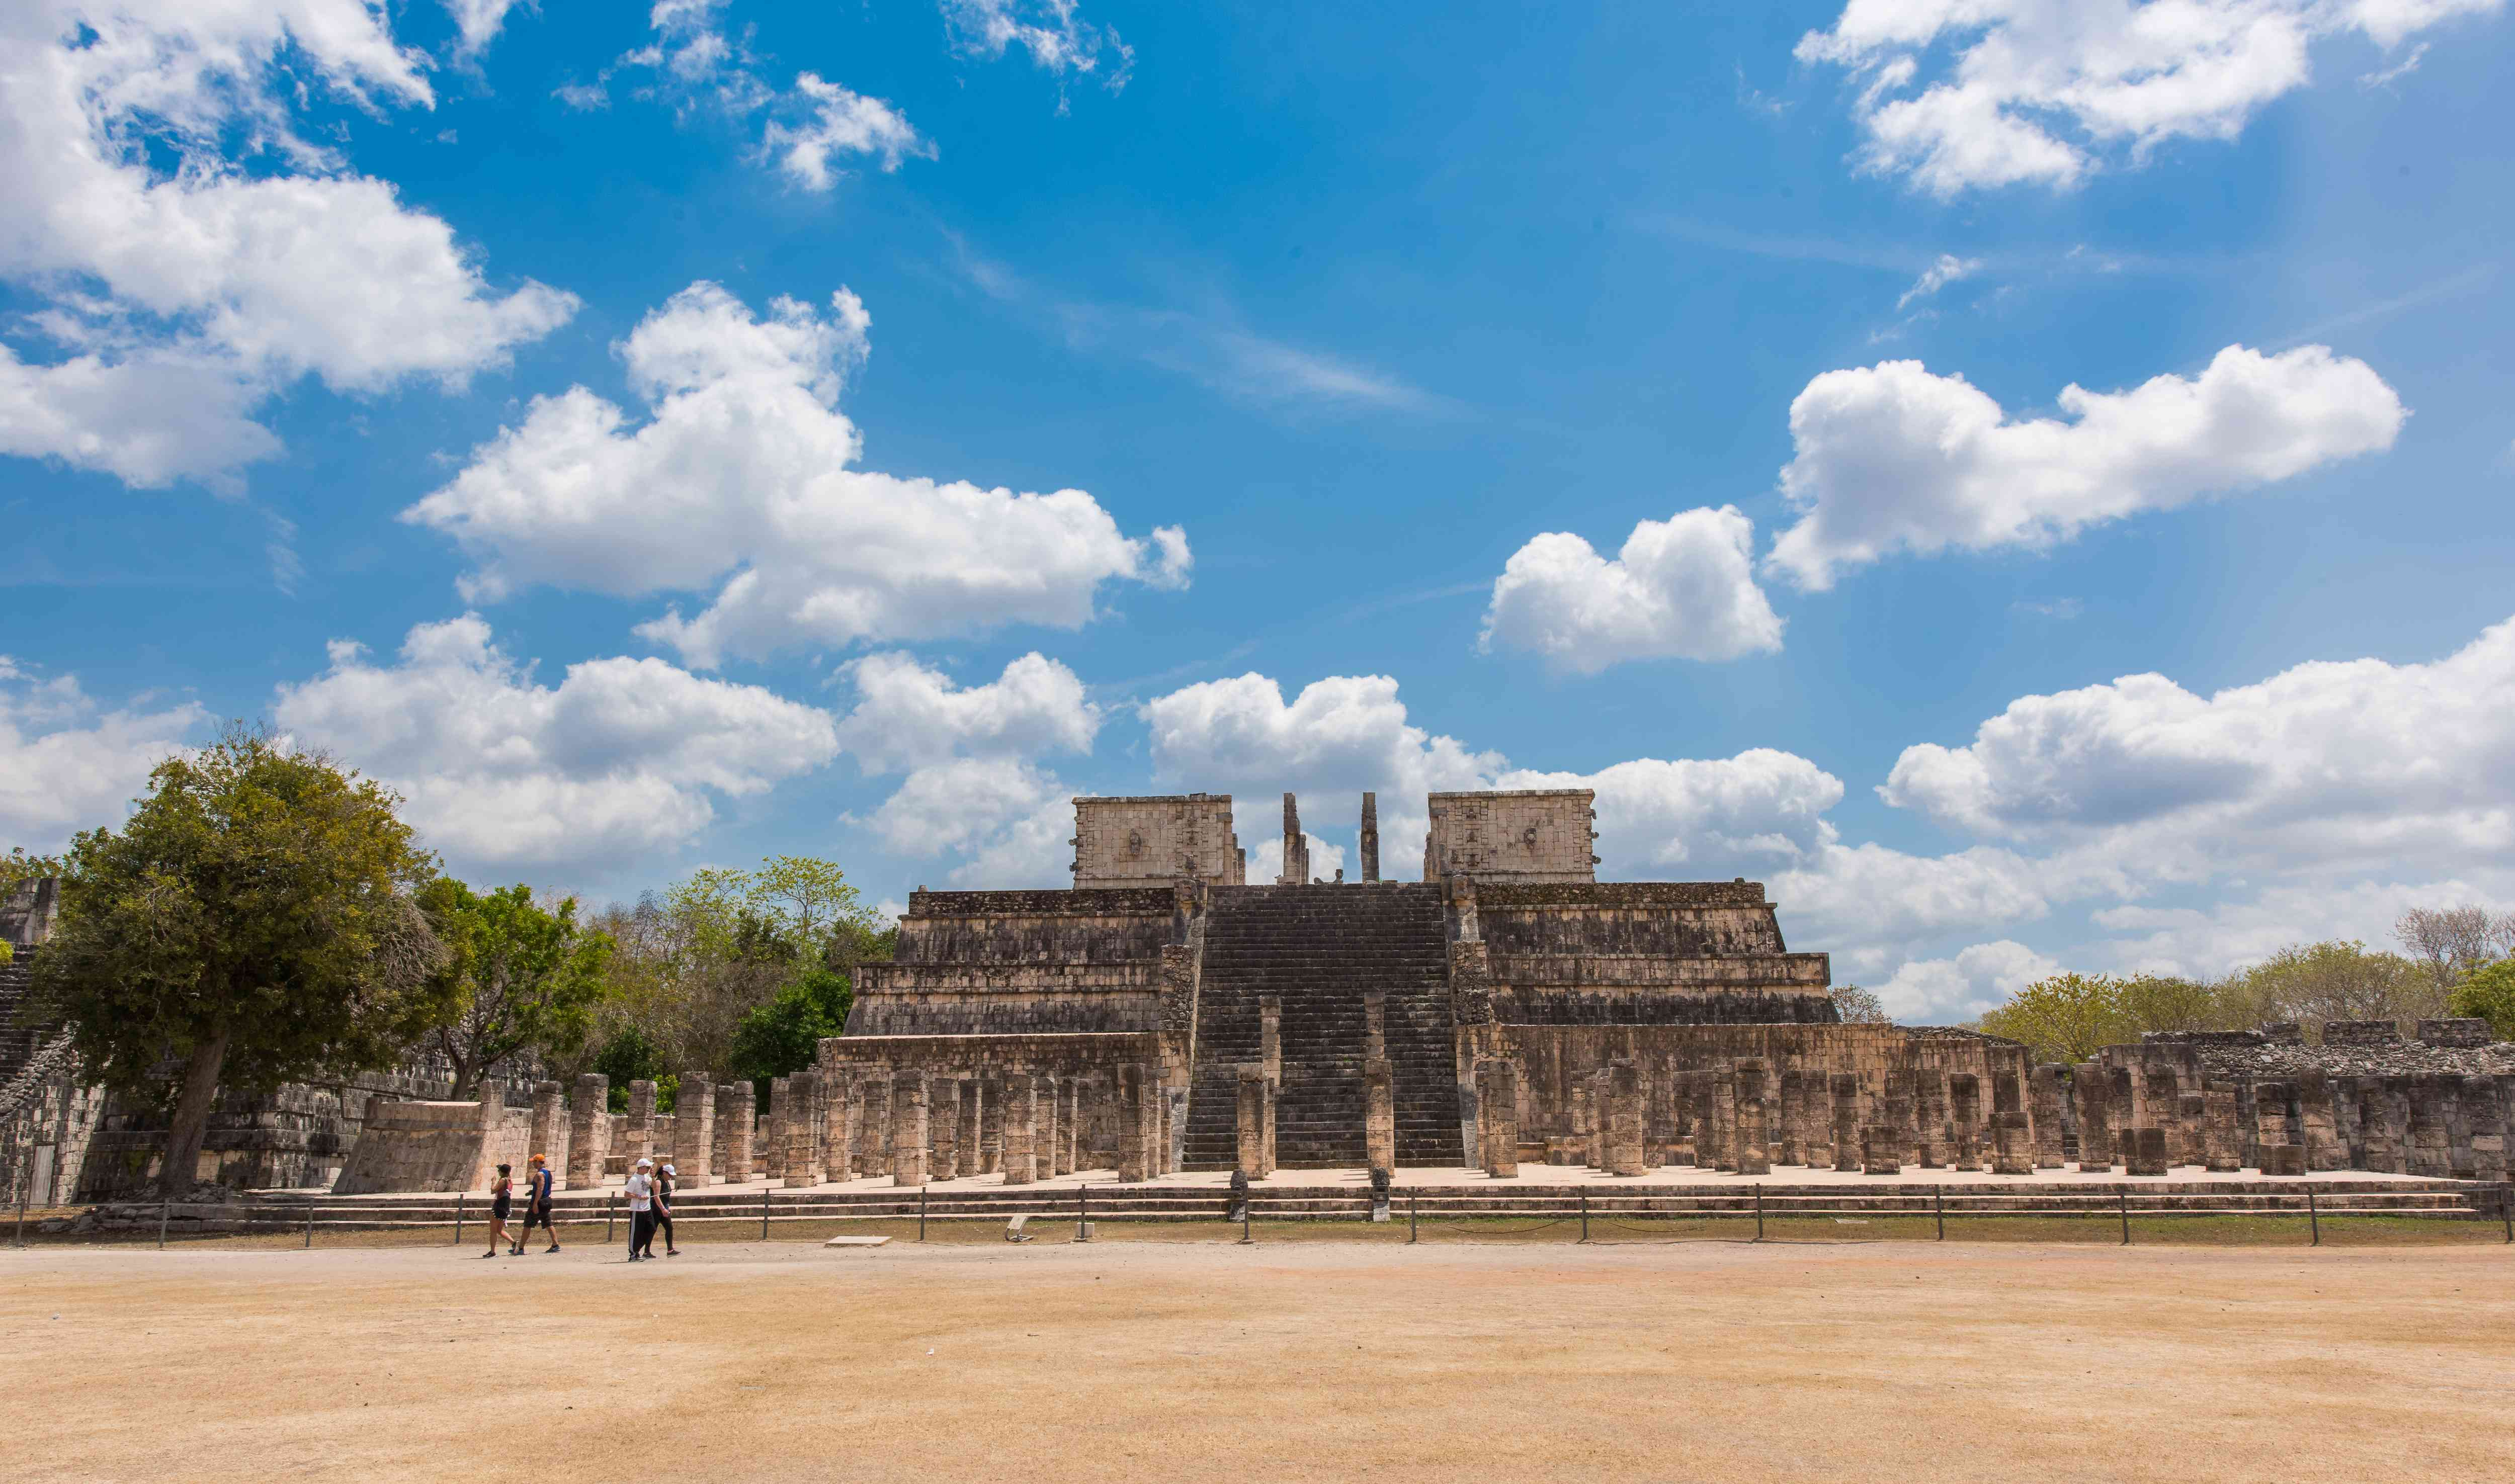 Archaeological site at Chichen Itza on a sunny day